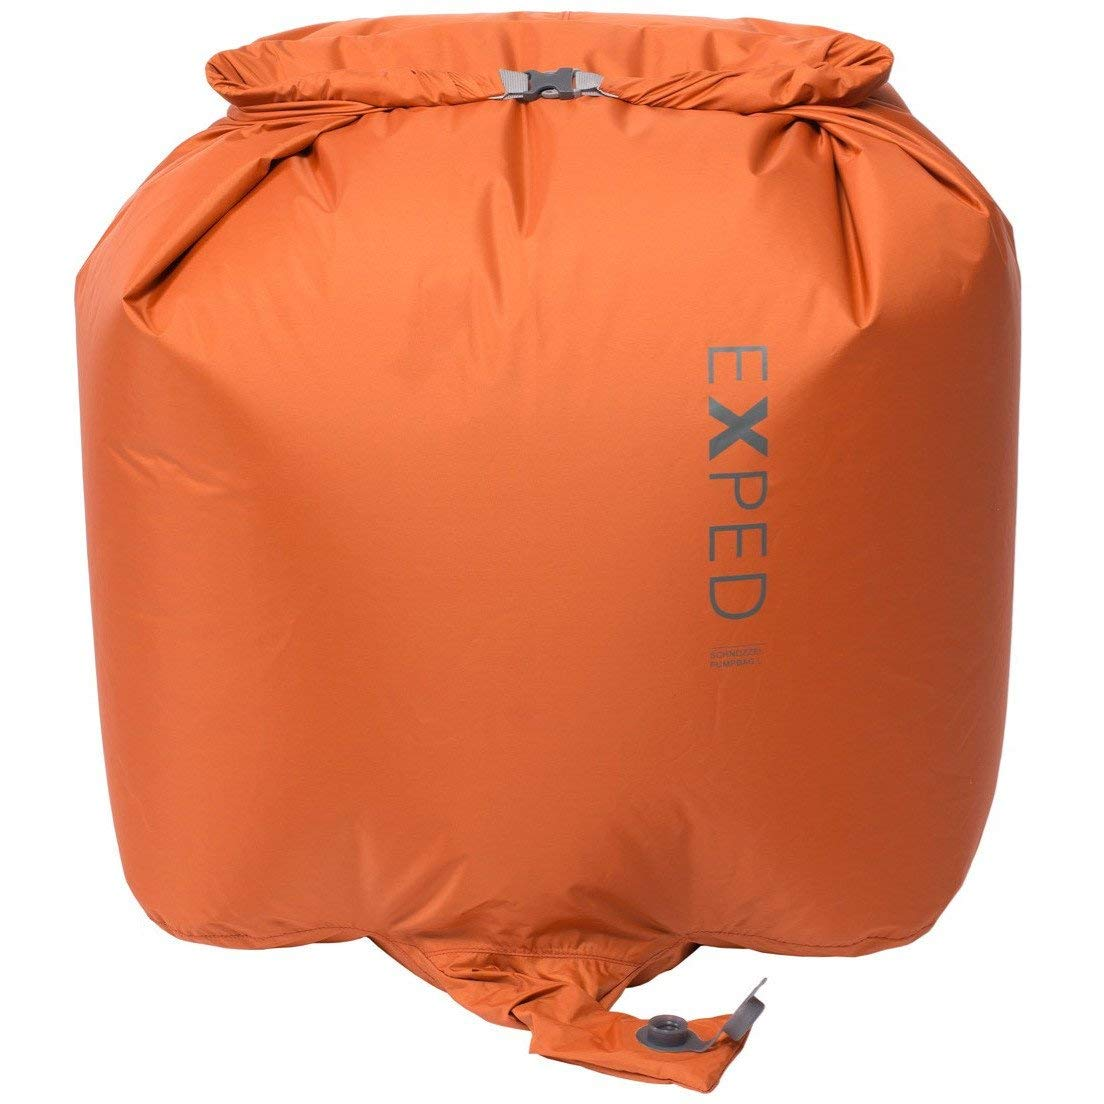 Exped Schnozzel Pumpbag, Terracotta, Large by Exped